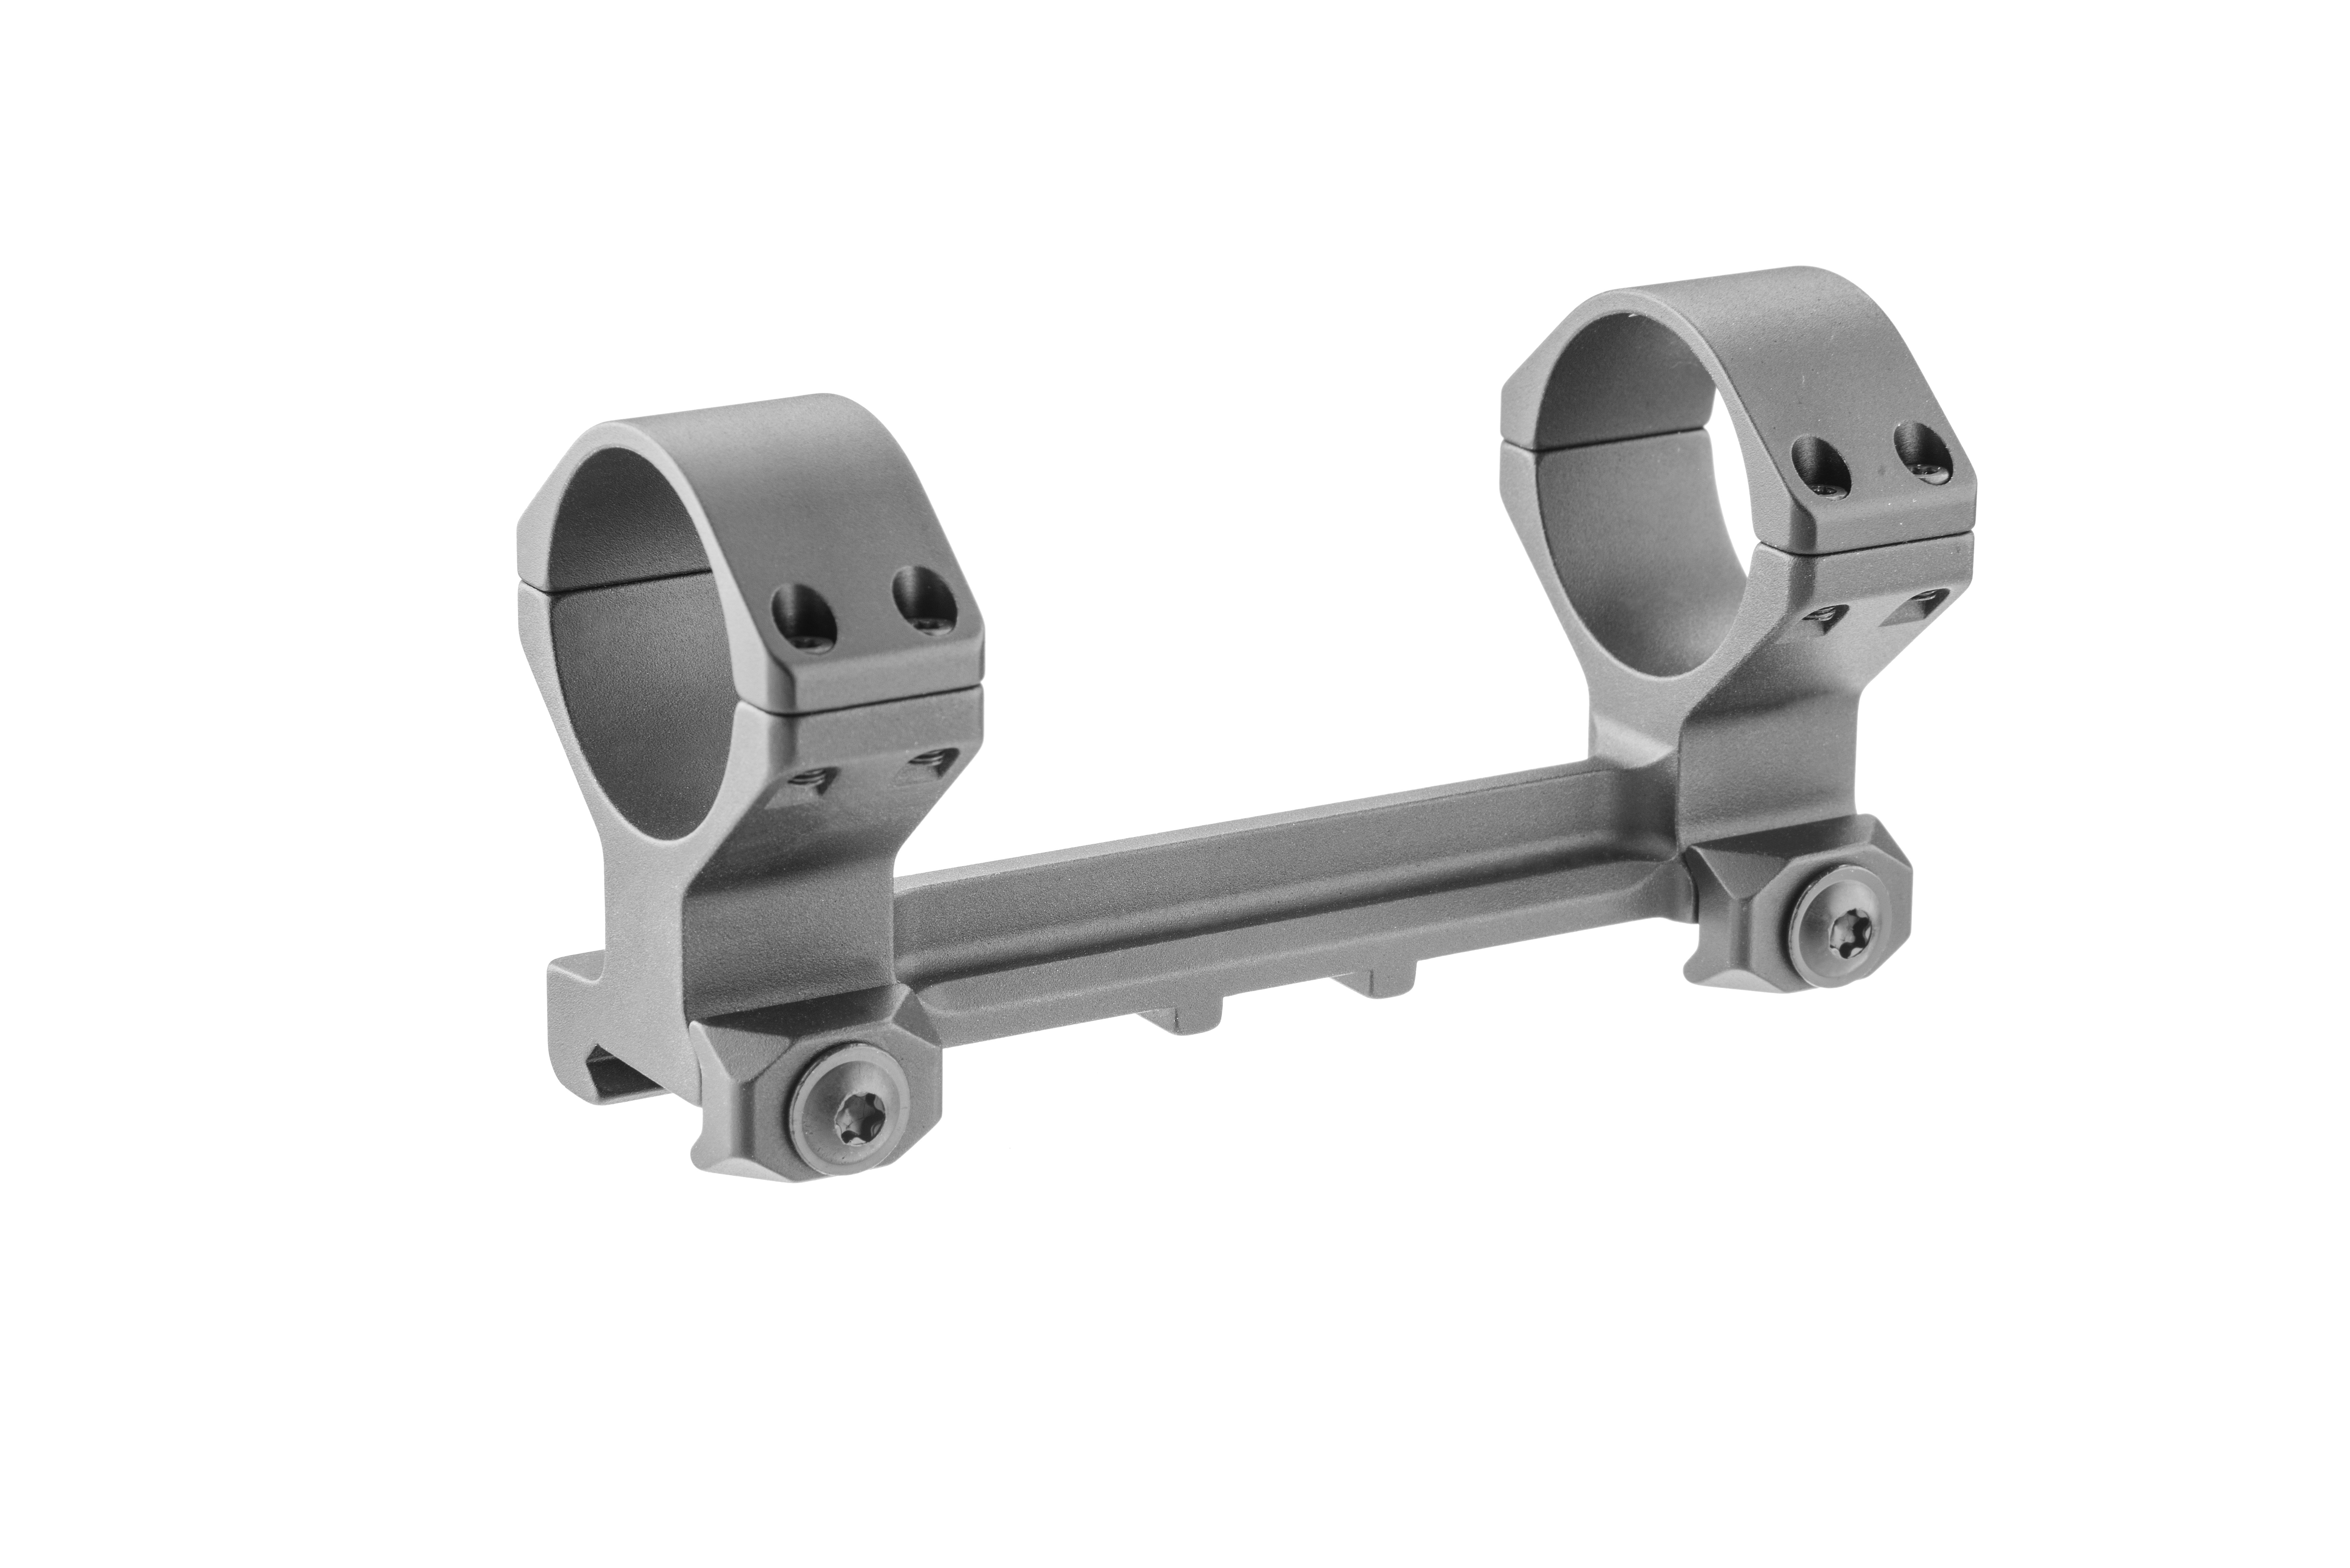 ERATAC UltraLight II 34mm Scope Mount - T3014